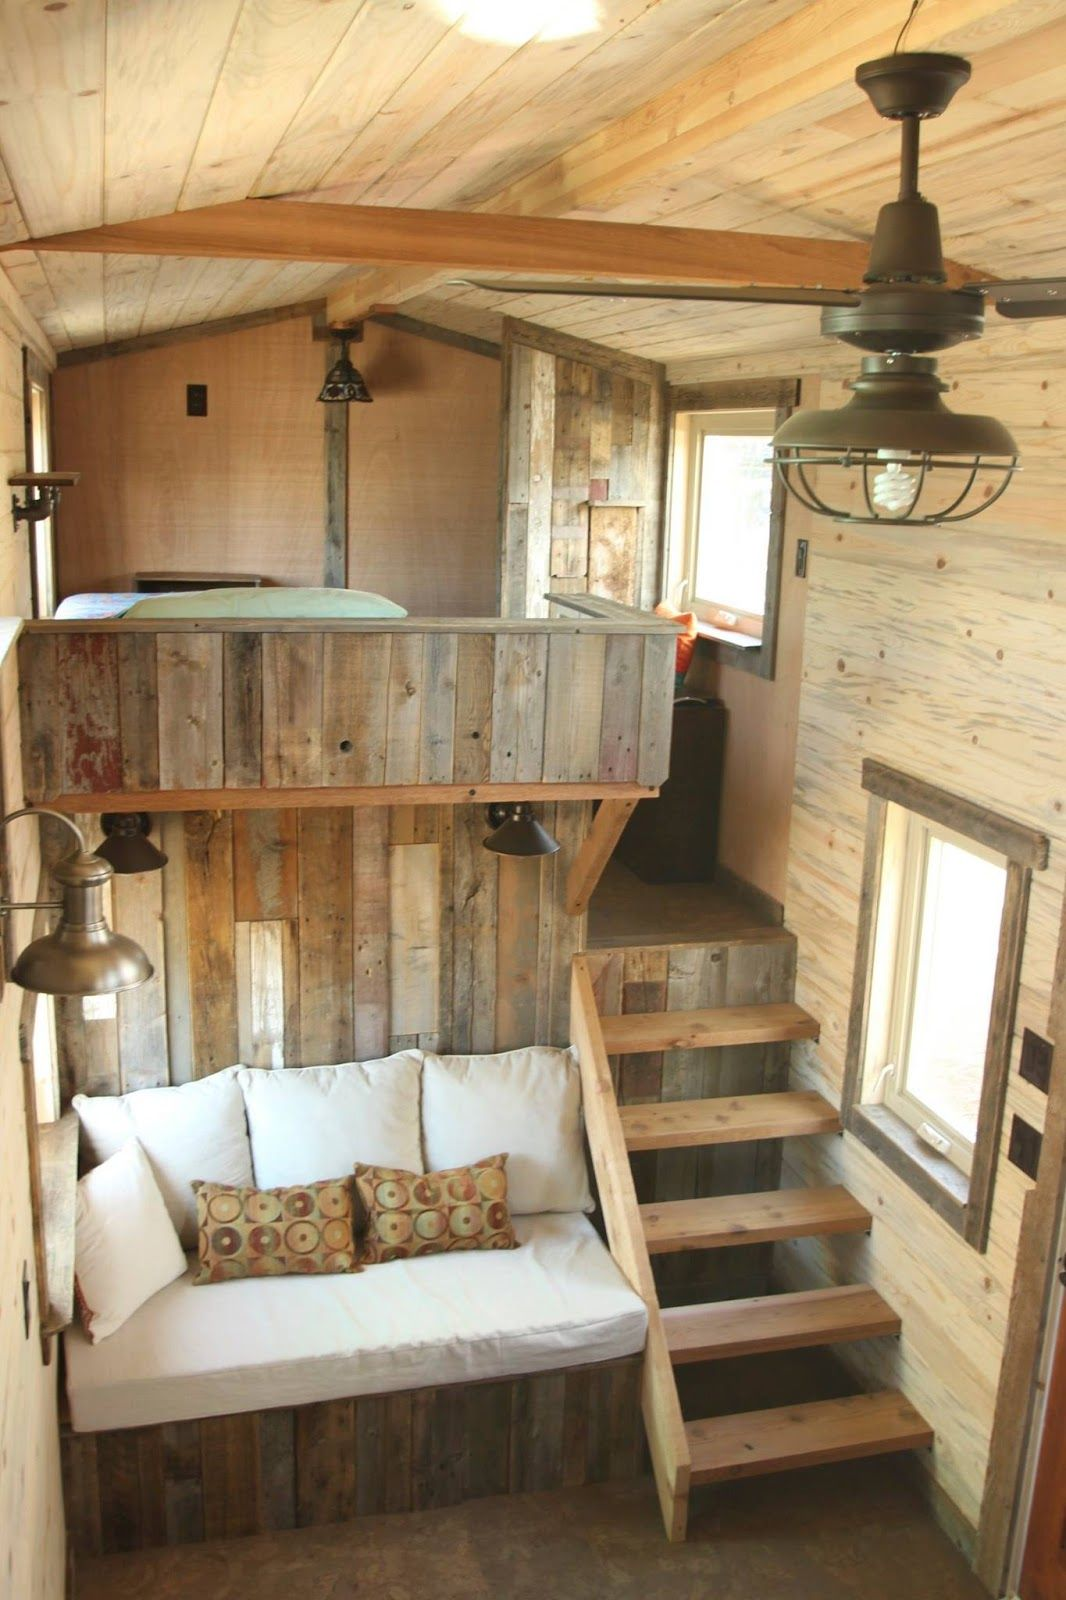 5 tiny house designs 2019 plan designs around the world incredible tiny houses you ll hardly. Black Bedroom Furniture Sets. Home Design Ideas